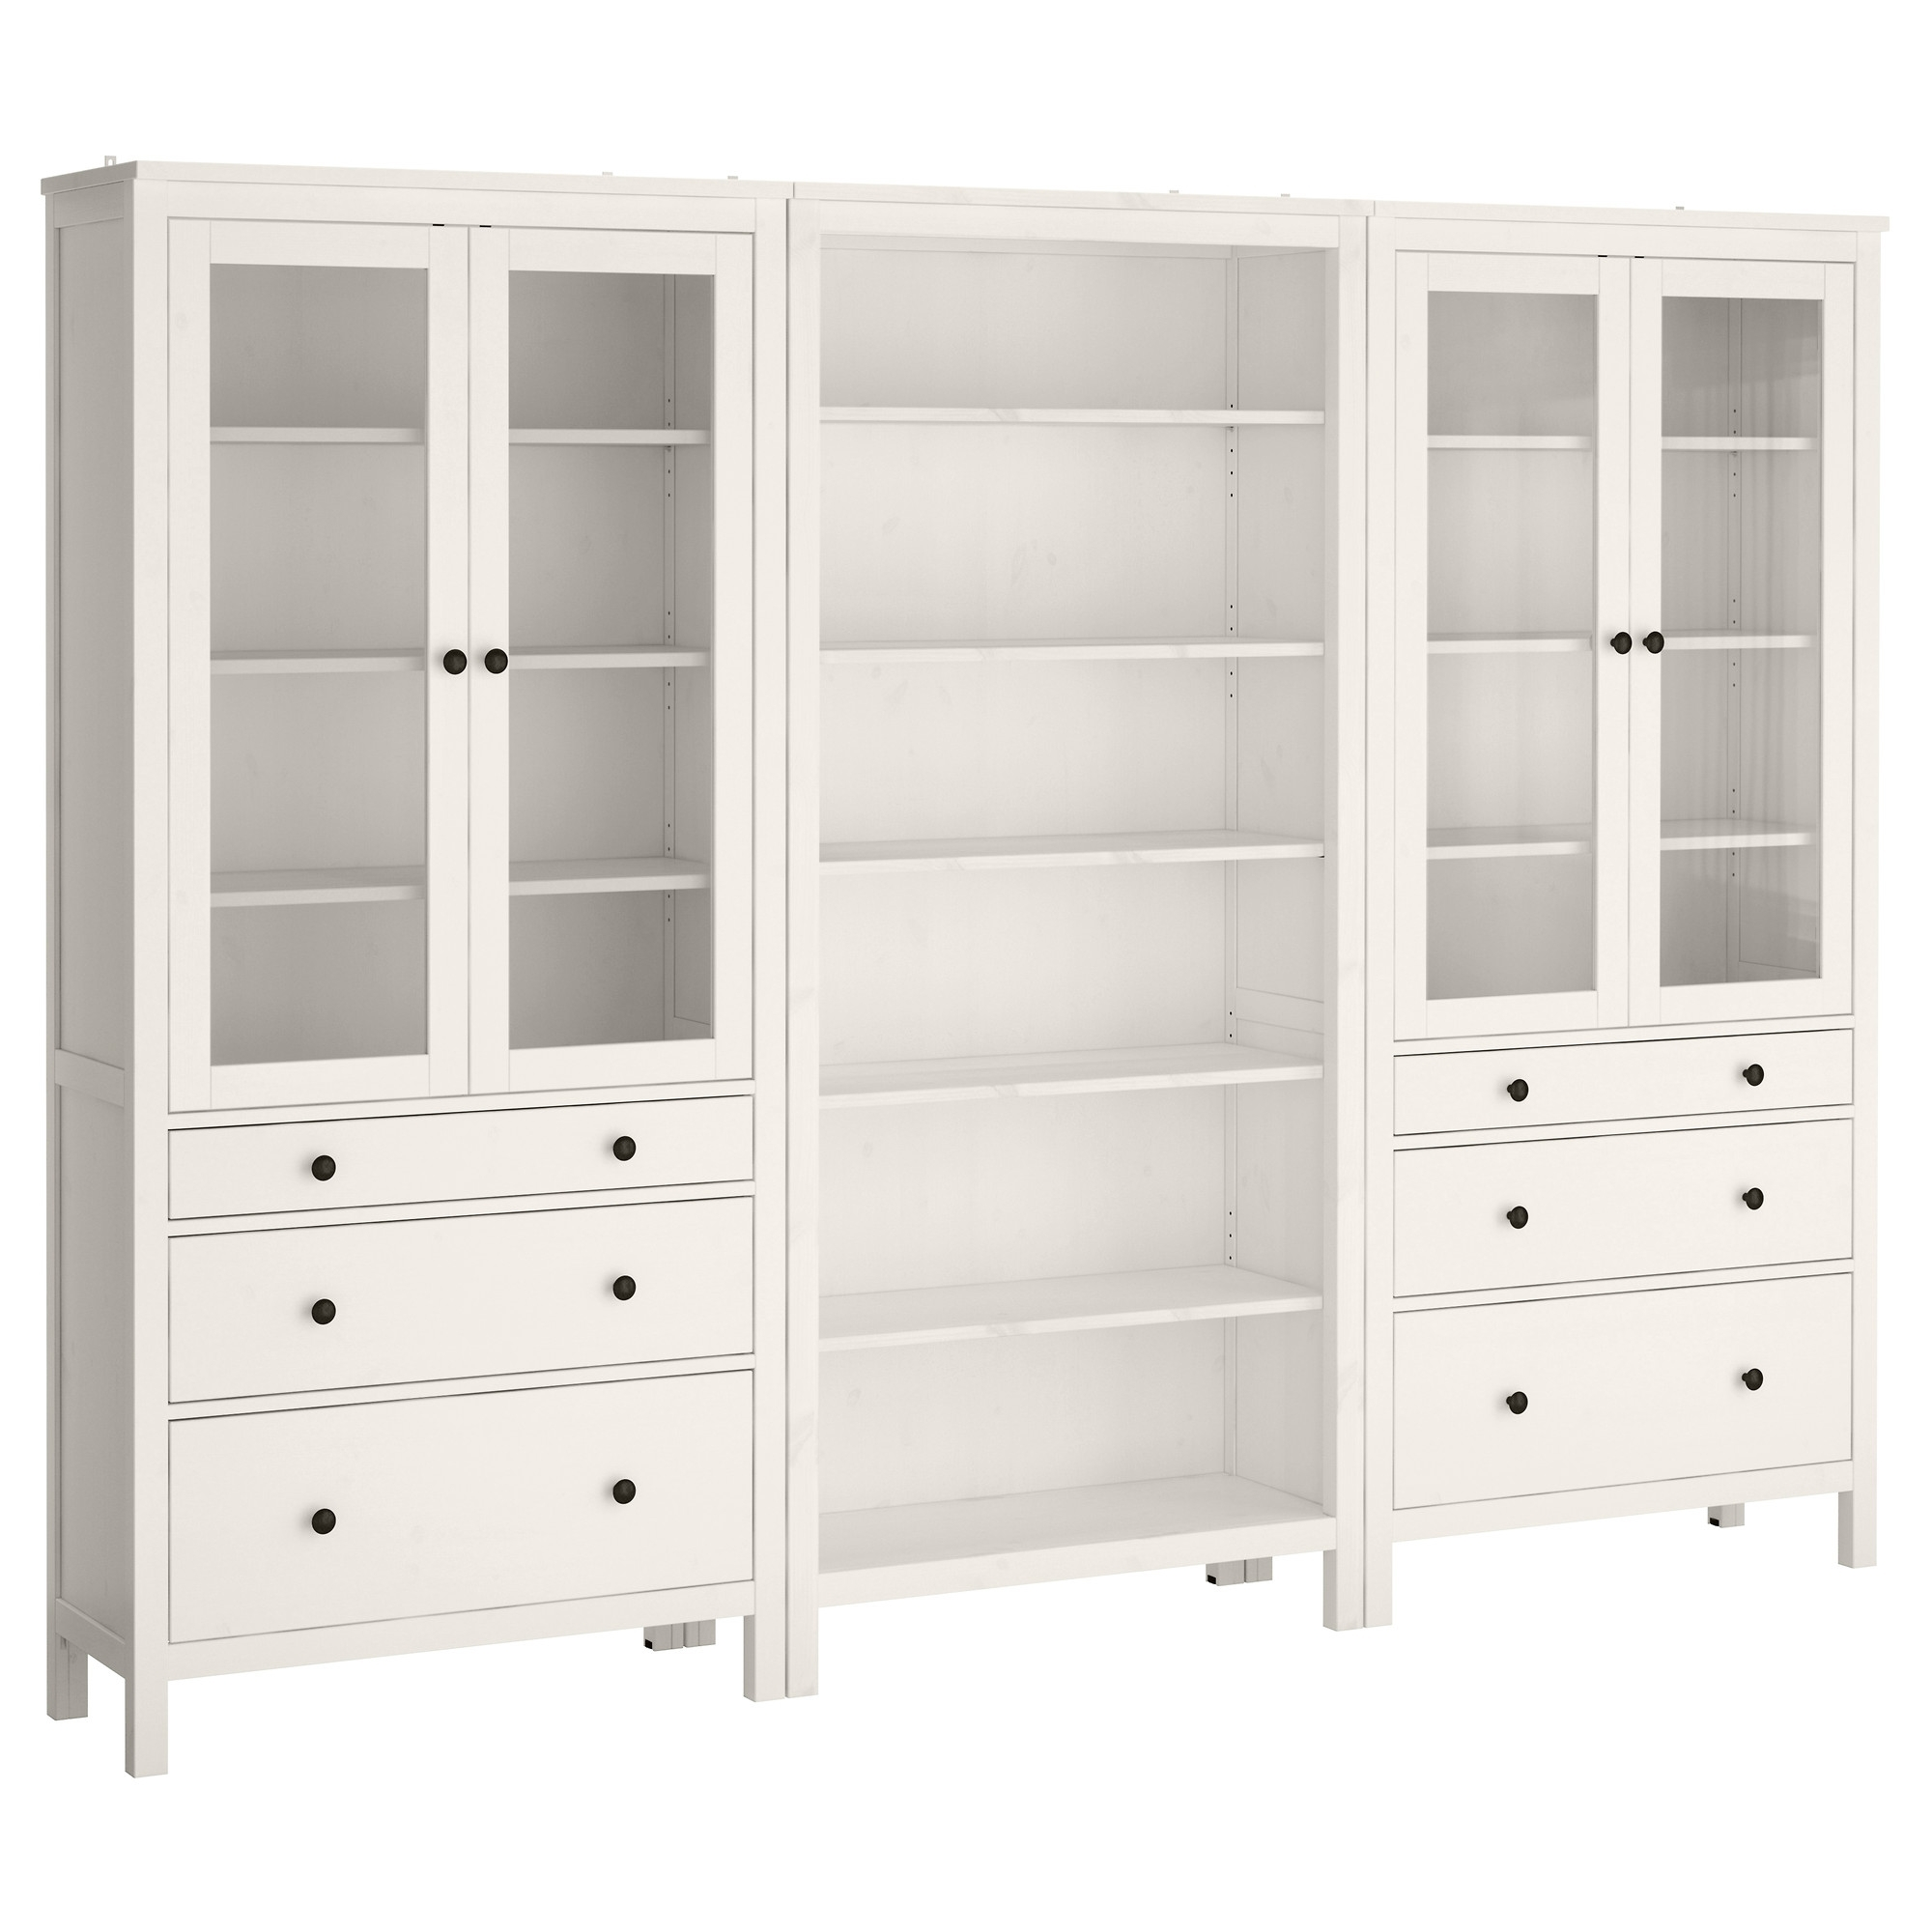 Wardrobes Drawers And Shelves Ikea Regarding Fashionable Hemnes Storage Combination W Doors/drawers – White Stain – Ikea (View 14 of 15)